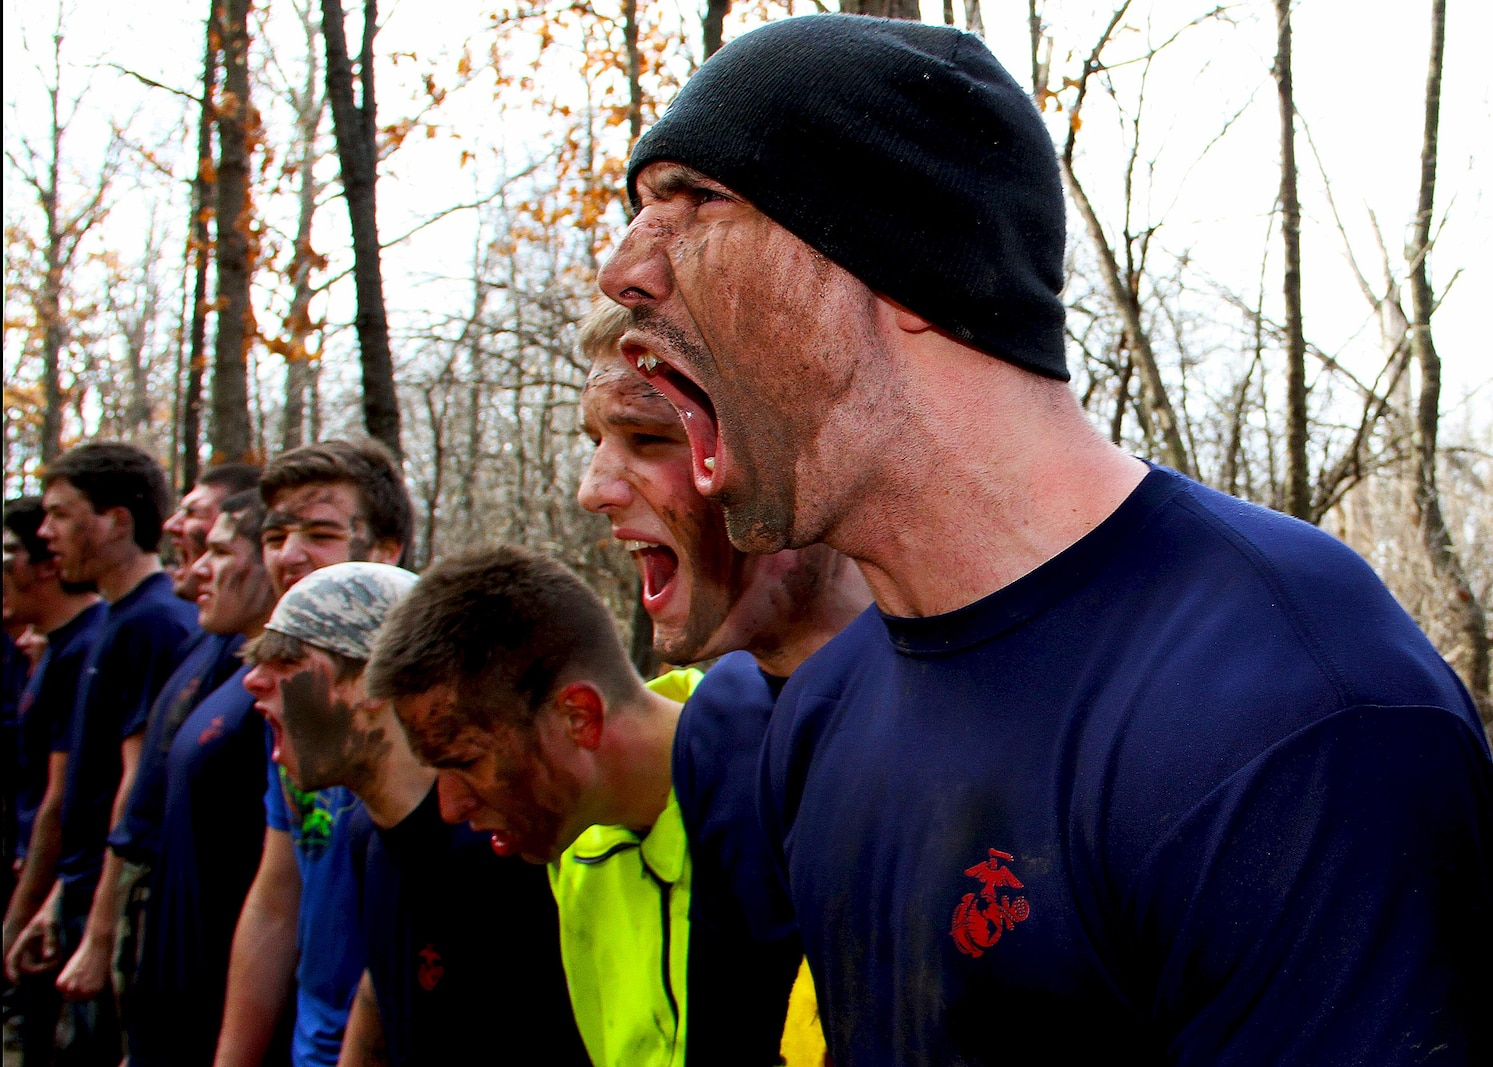 Recruiting Substation Aurora puts their Marine-applicant's endurance to the test with a pack run through rugged terrain during an all-hands event, March 14. The applicants are a part of the Marine Corps' Delayed Entry Program and are currently scheduled and preparing to ship to recruit training.